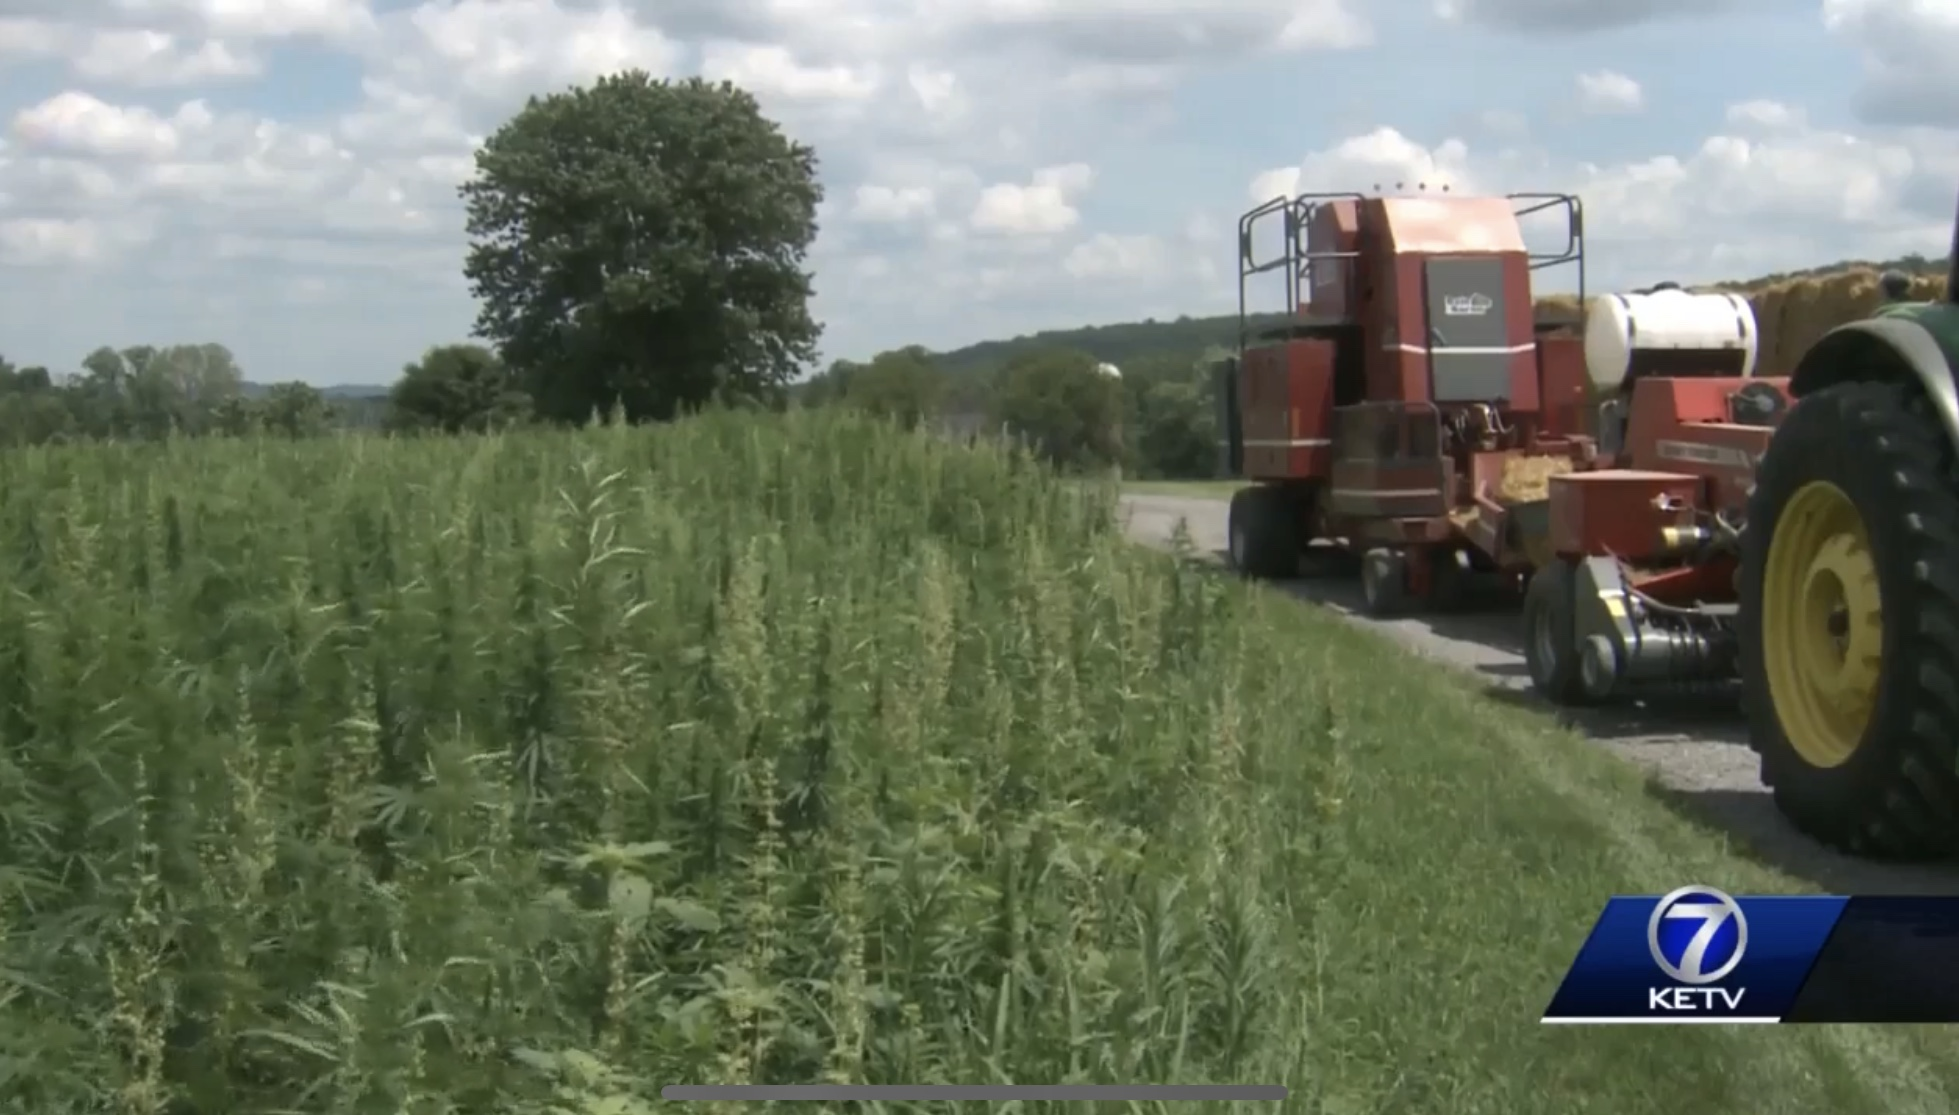 """HEMP HOPEFULS CALL STATE'S 2019 RESEARCH PLAN A """"SLAP IN THE FACE"""" (7/28)"""